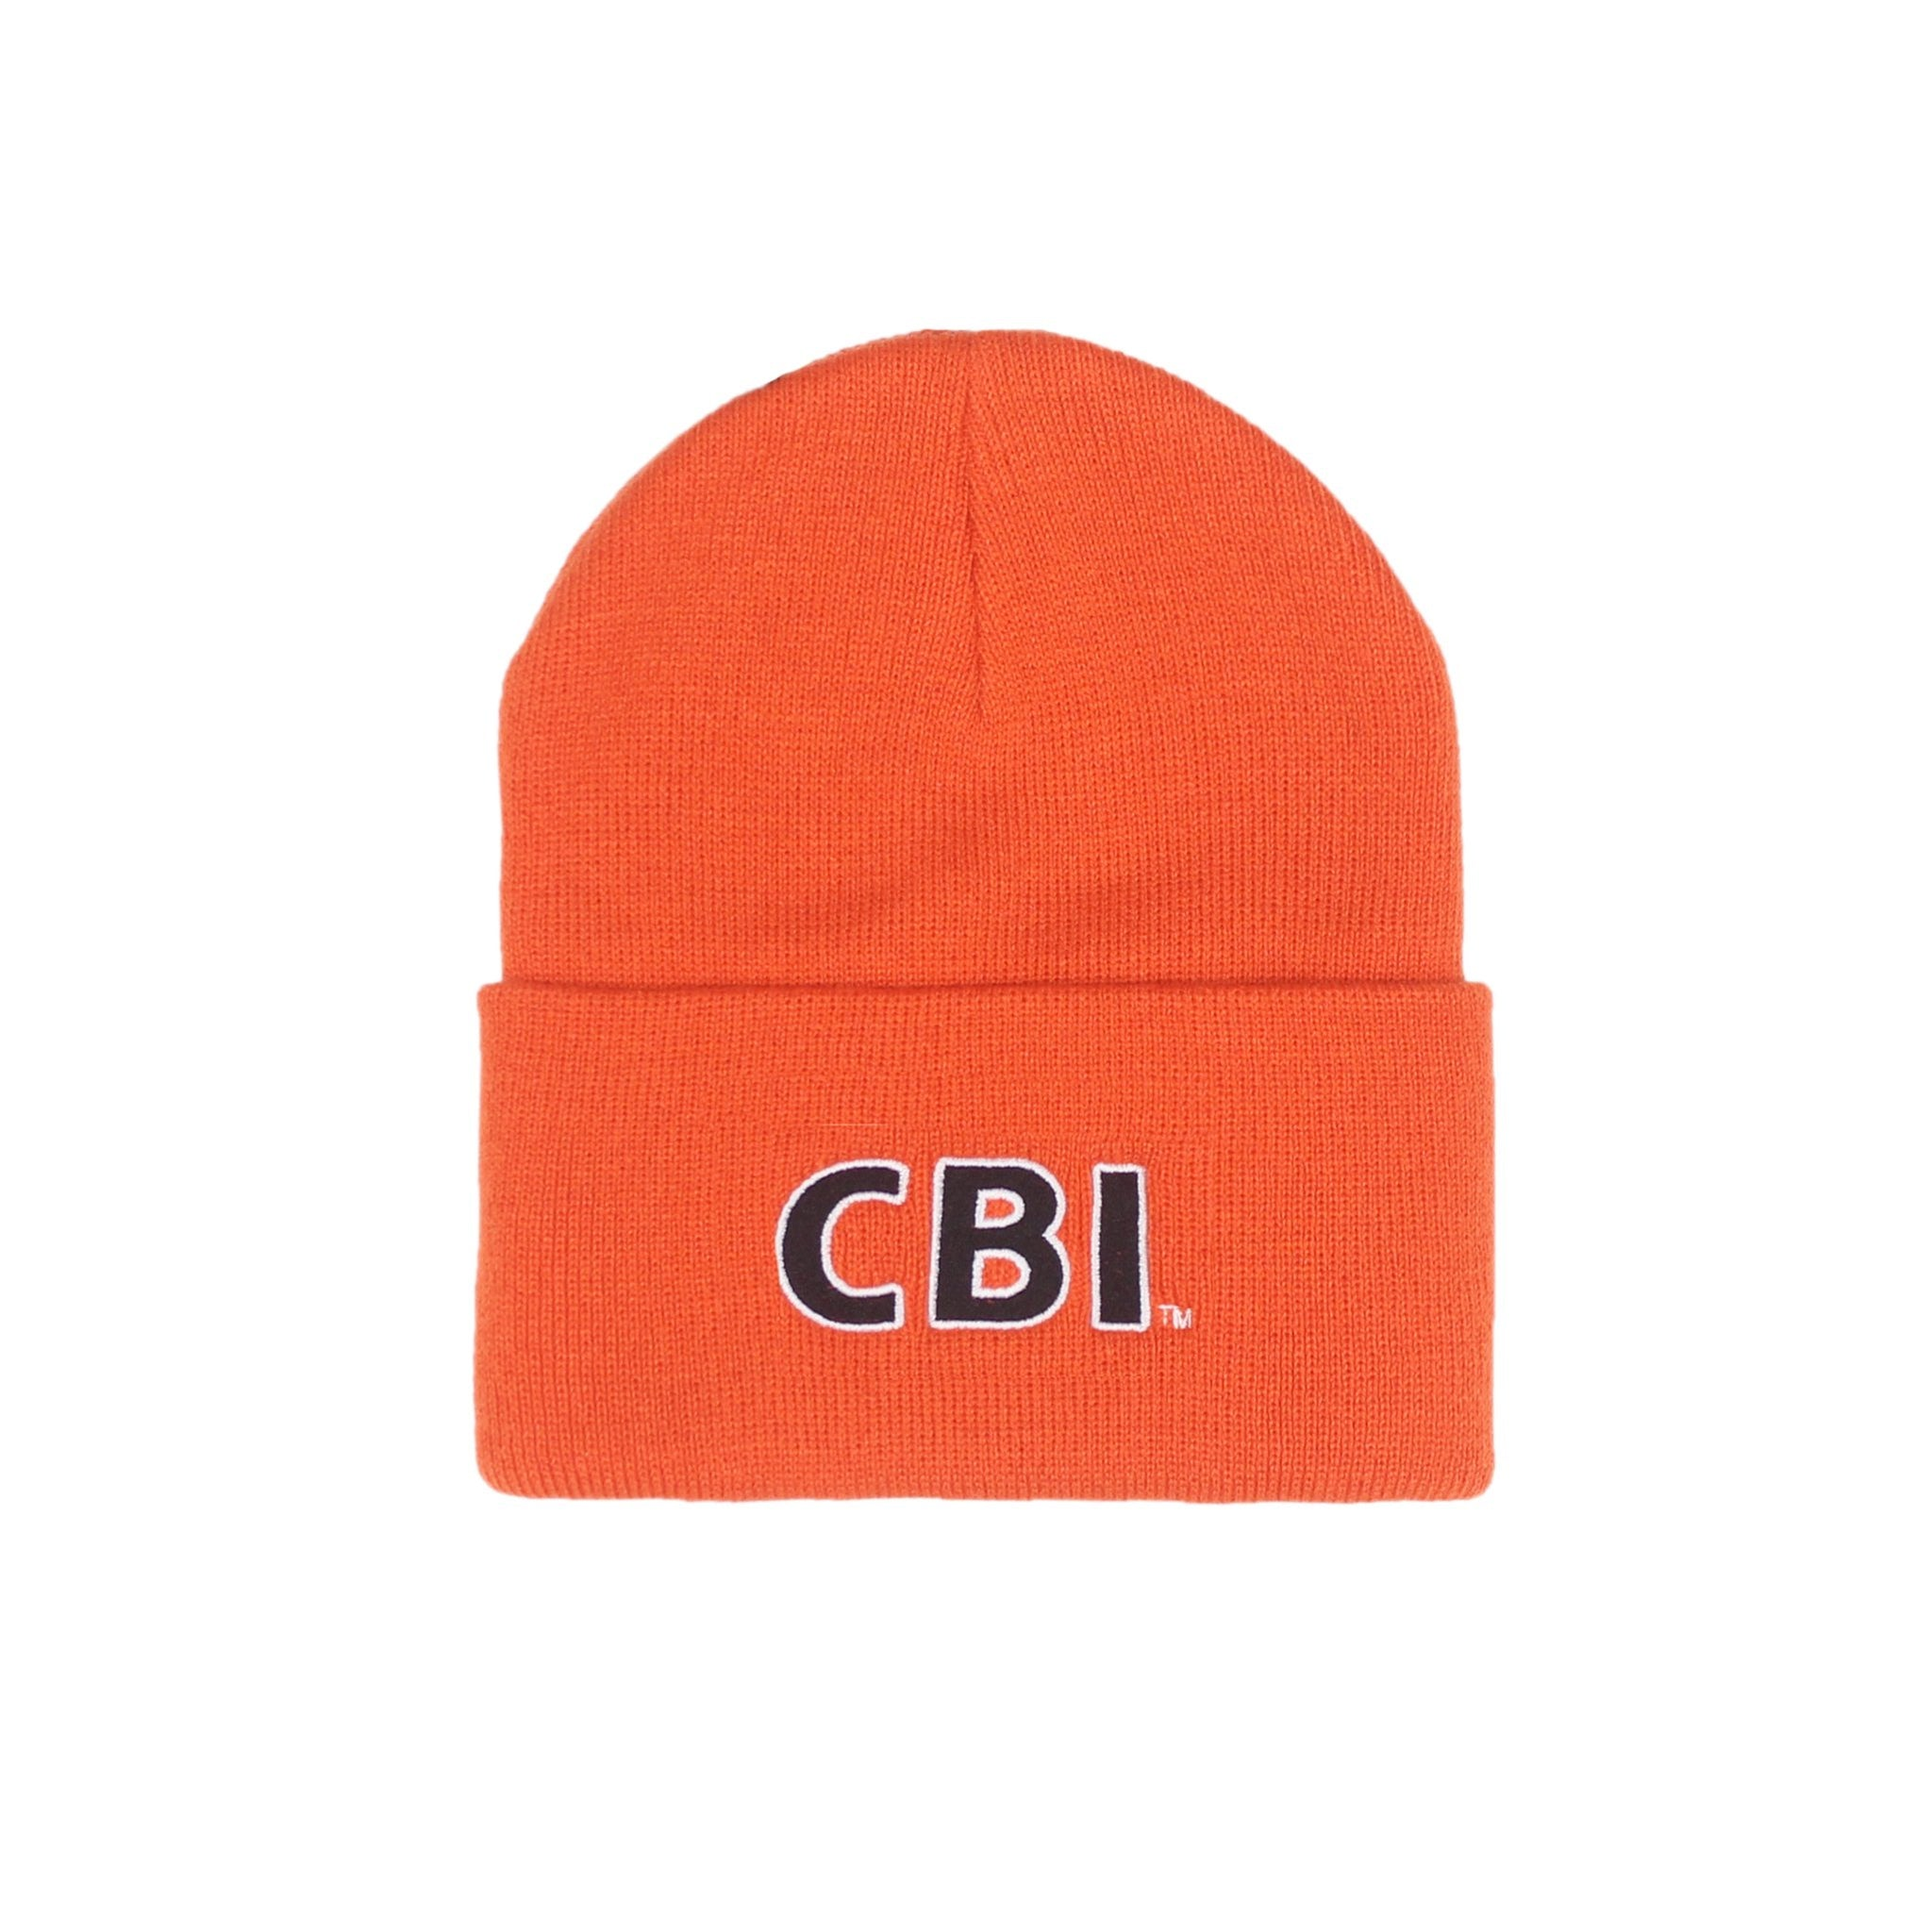 Straight Letter Watchtower Beanie - Orange